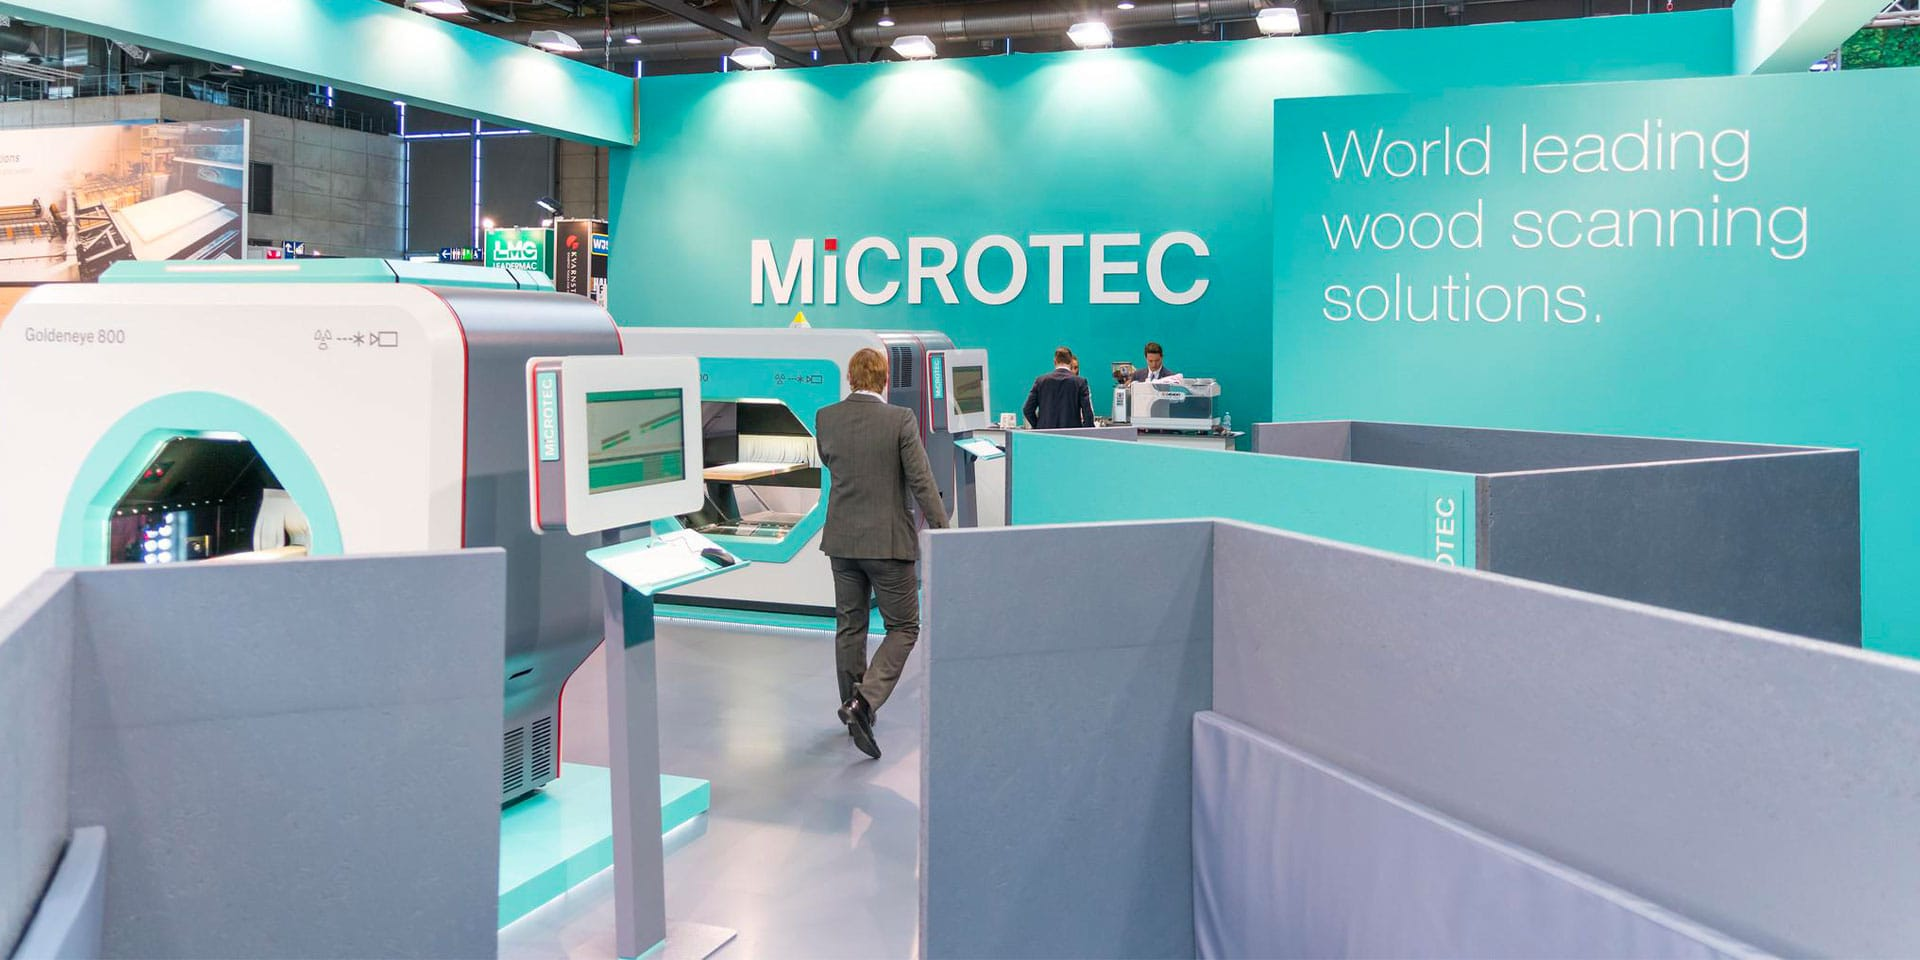 Il nuovo Corporate Design per Microtec